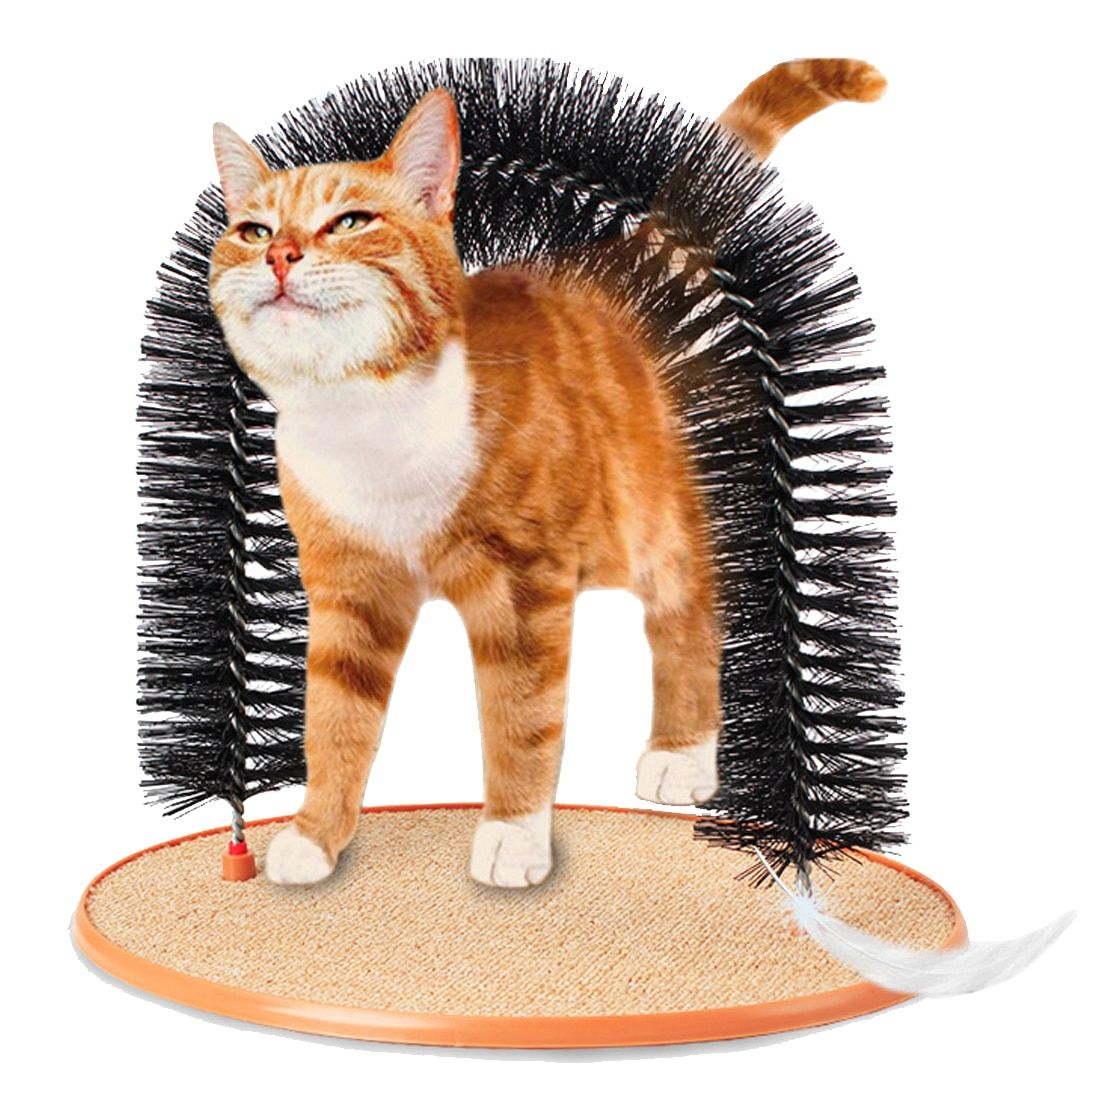 Pet Products Good Arch Pet Cat Self Groomer With Round <font><b>Fleece</b></font> Base Cat Toy Brush Toys For Pets Scratching Devices